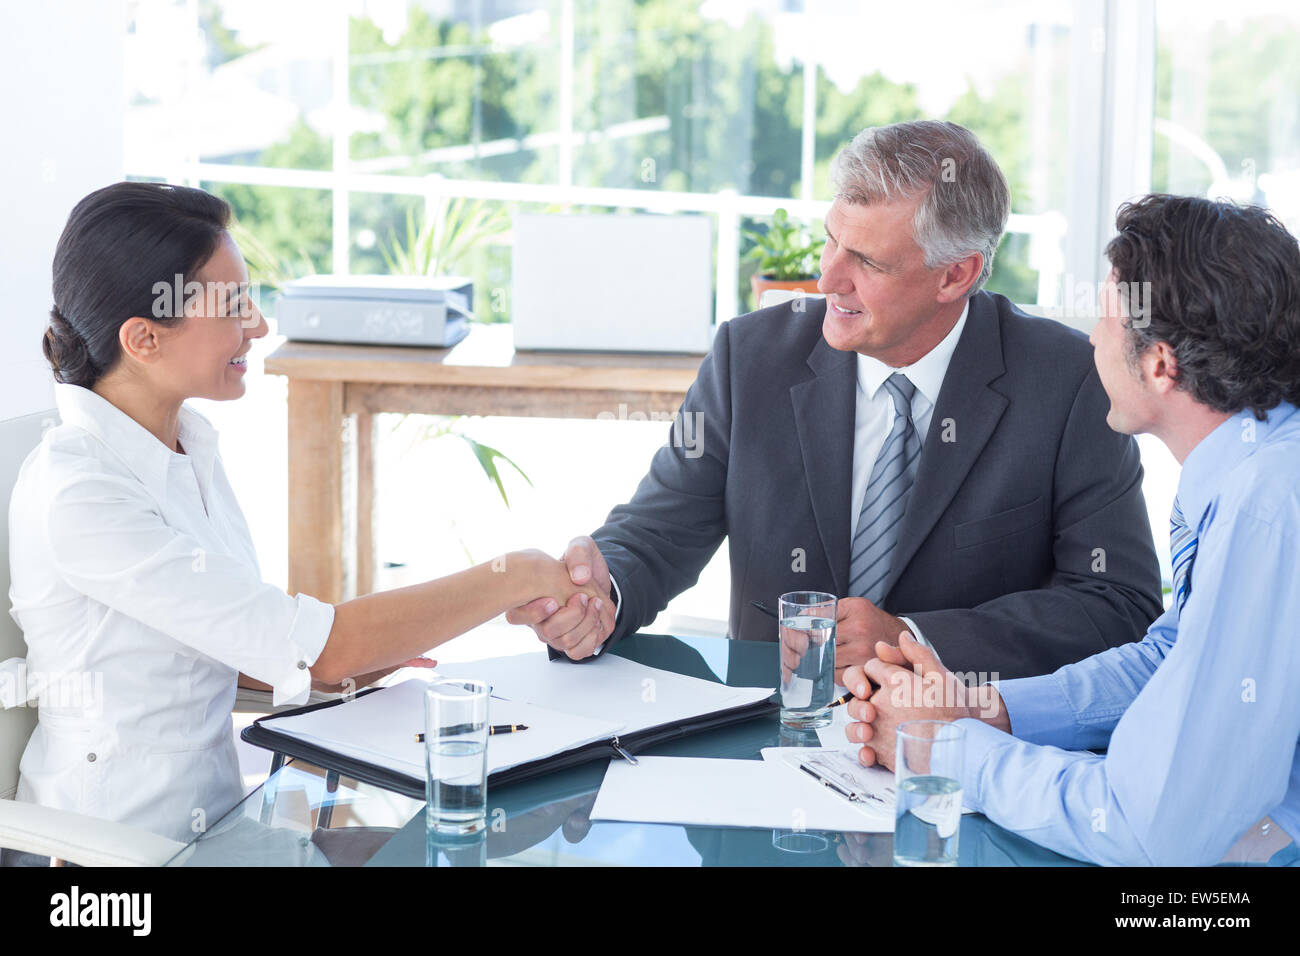 Business people reaching an agreement - Stock Image